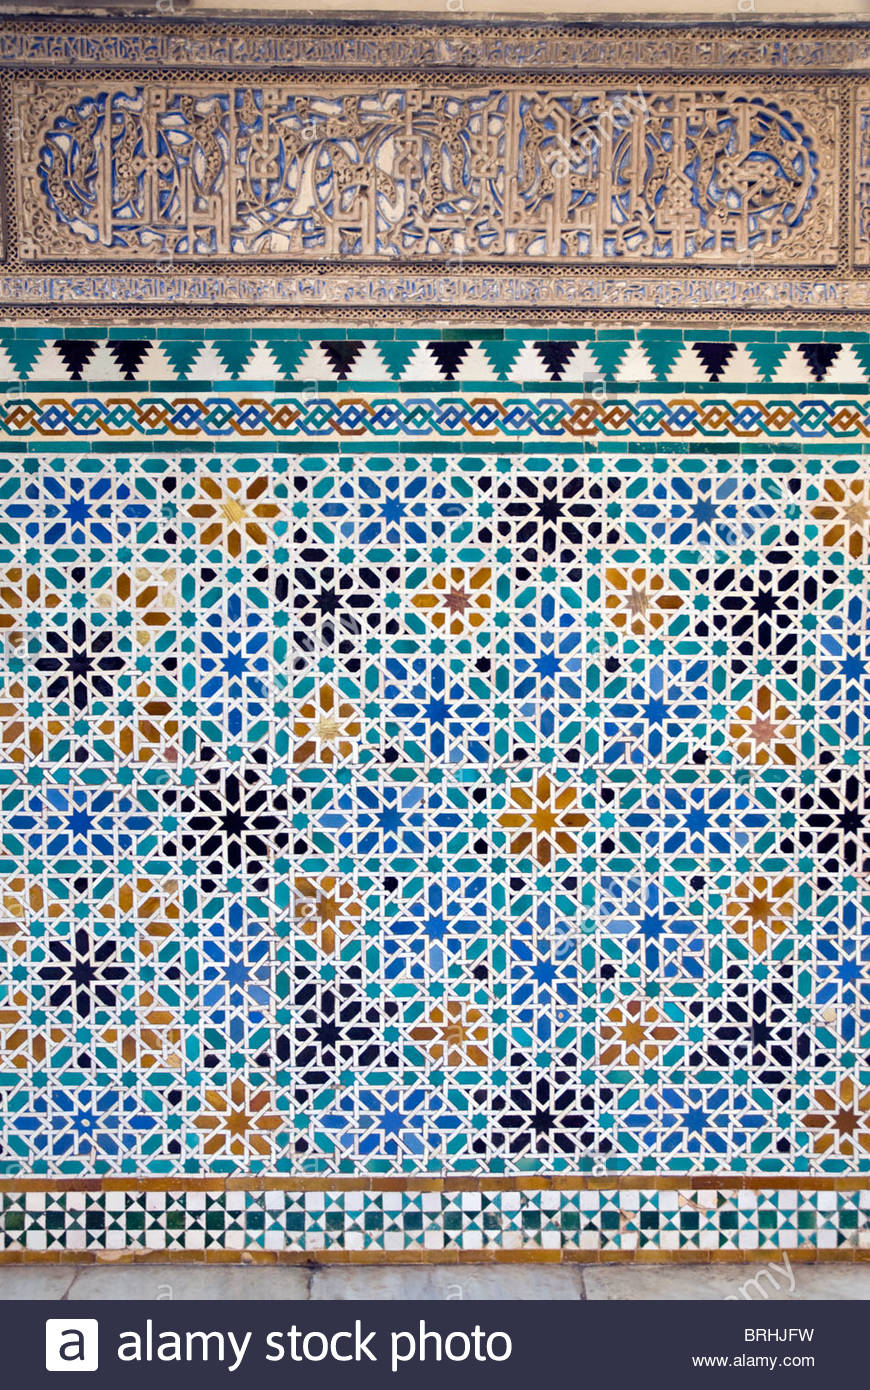 Detail of tiles and plaster carving at Alcazar Royal Palaces, Seville. Stock Photo